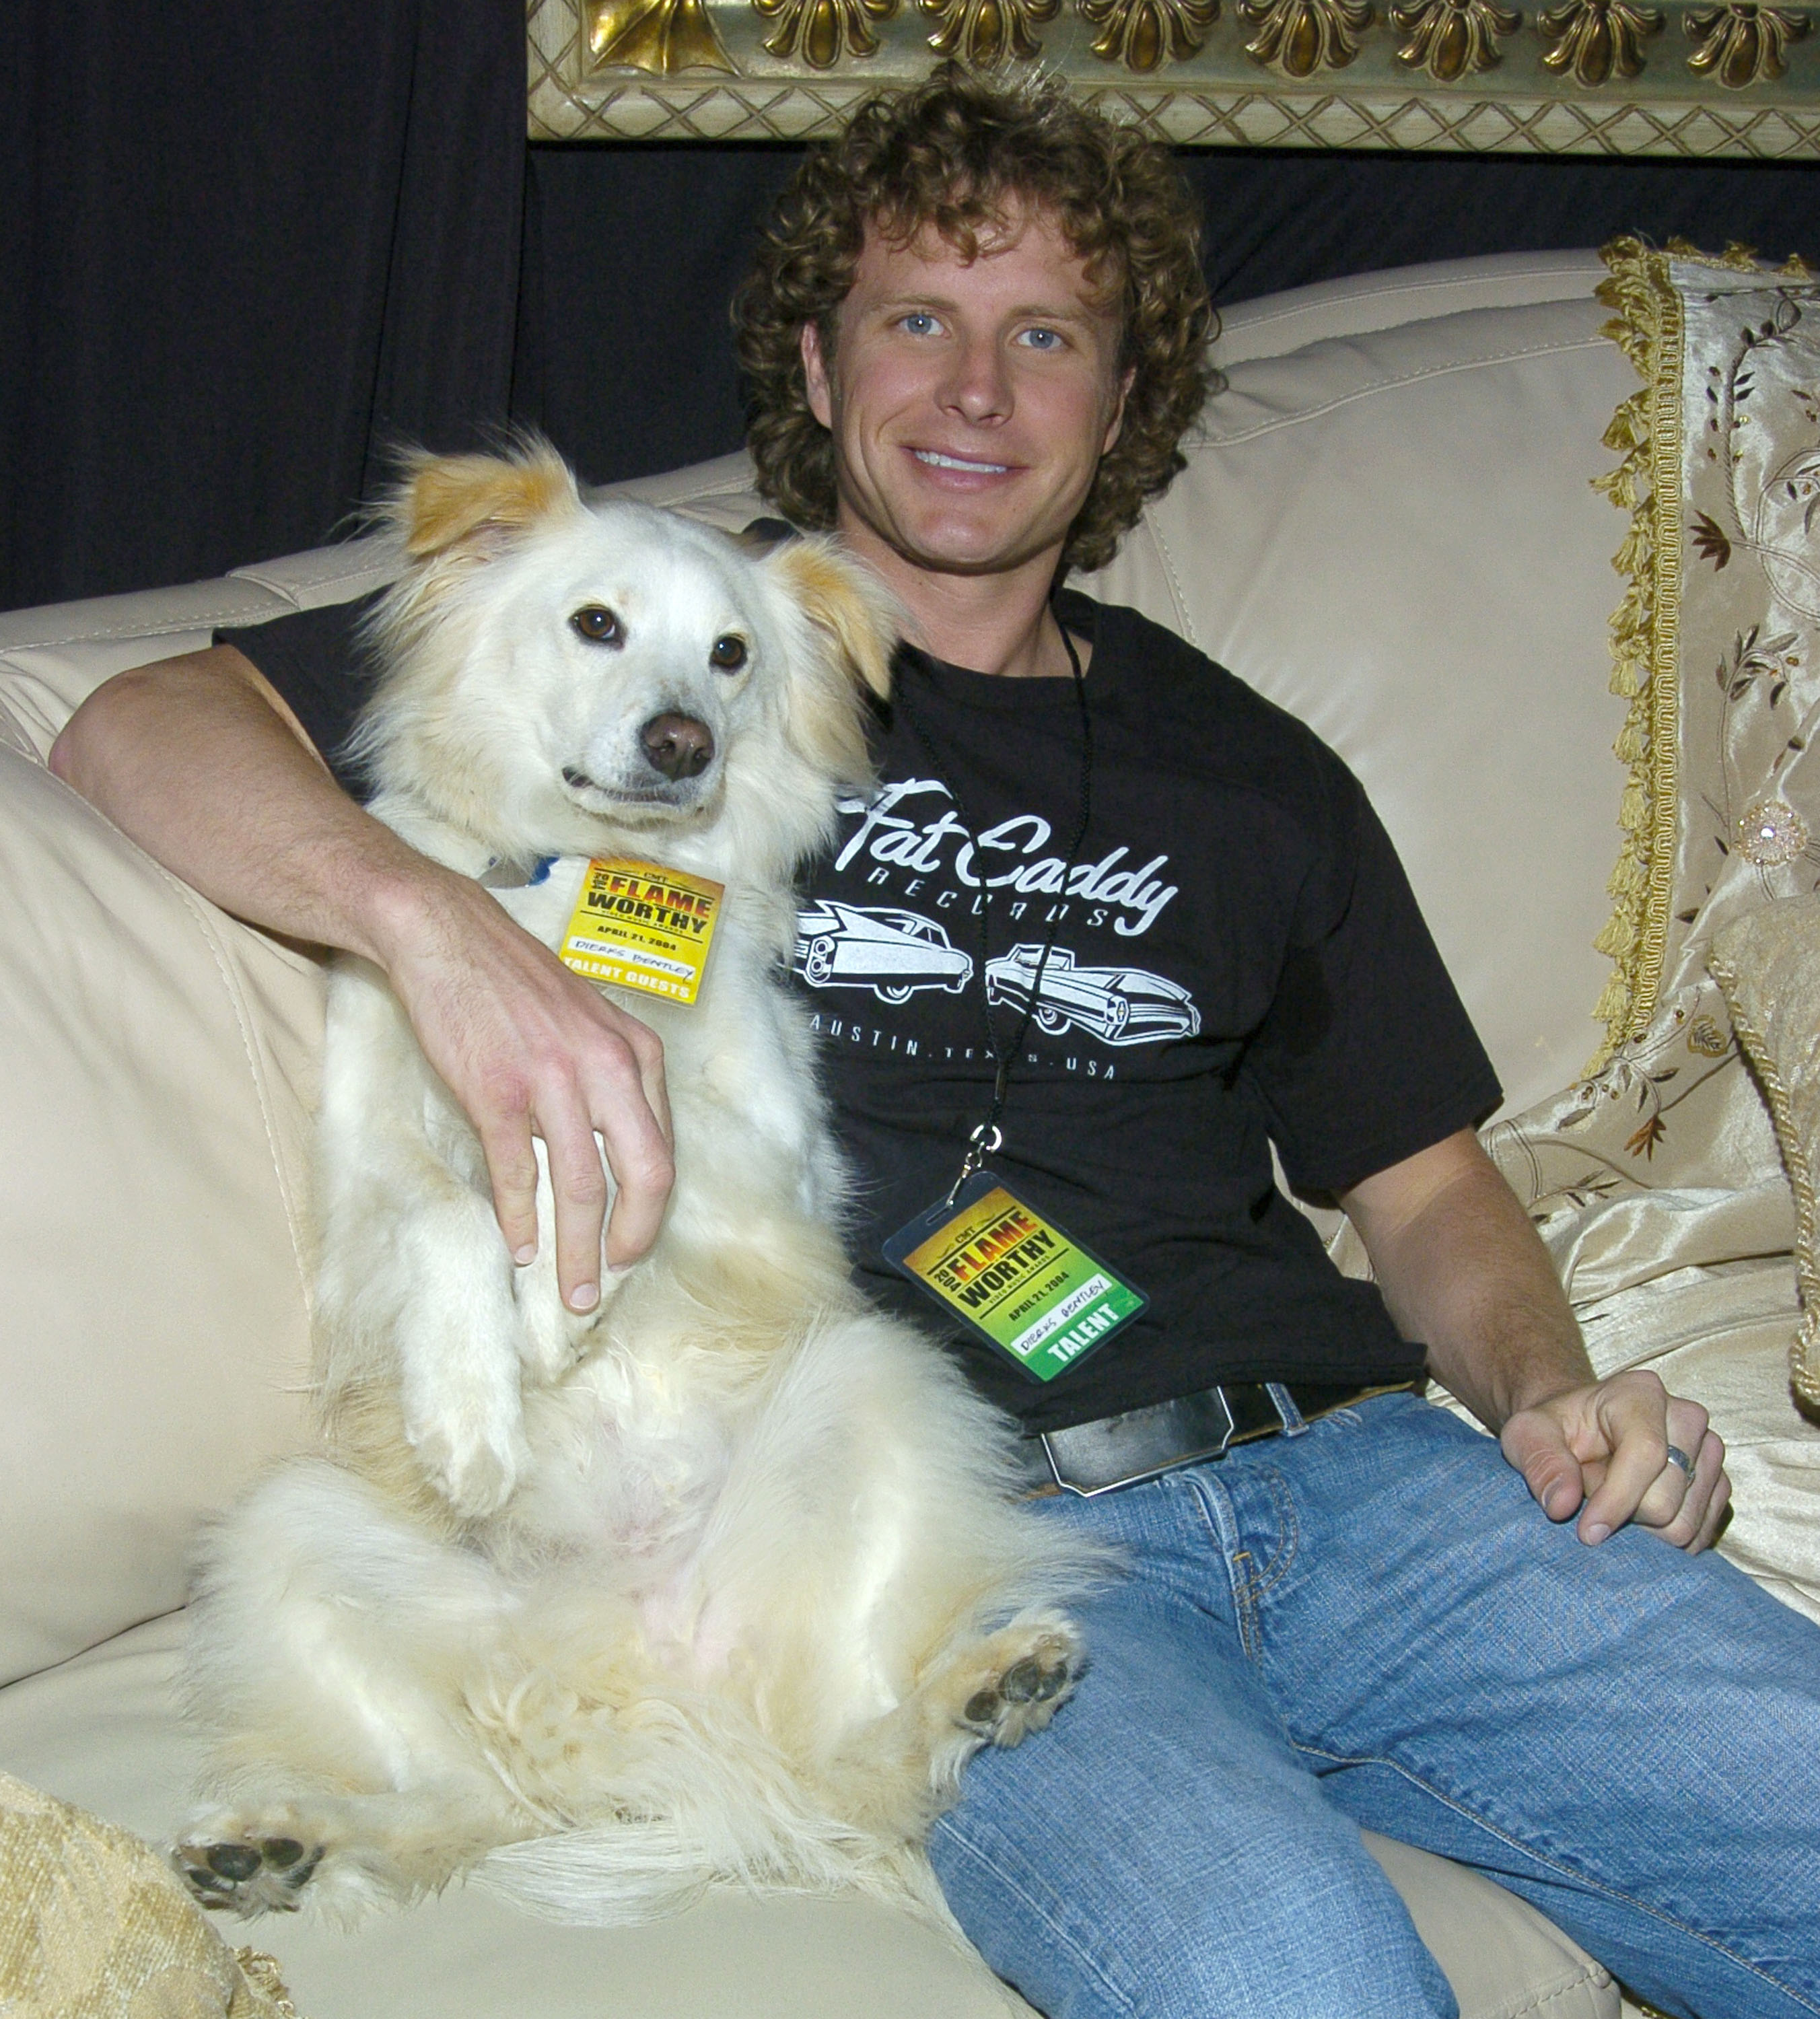 dierks bentley's dog jake gets a proper tribut | news | megacountry